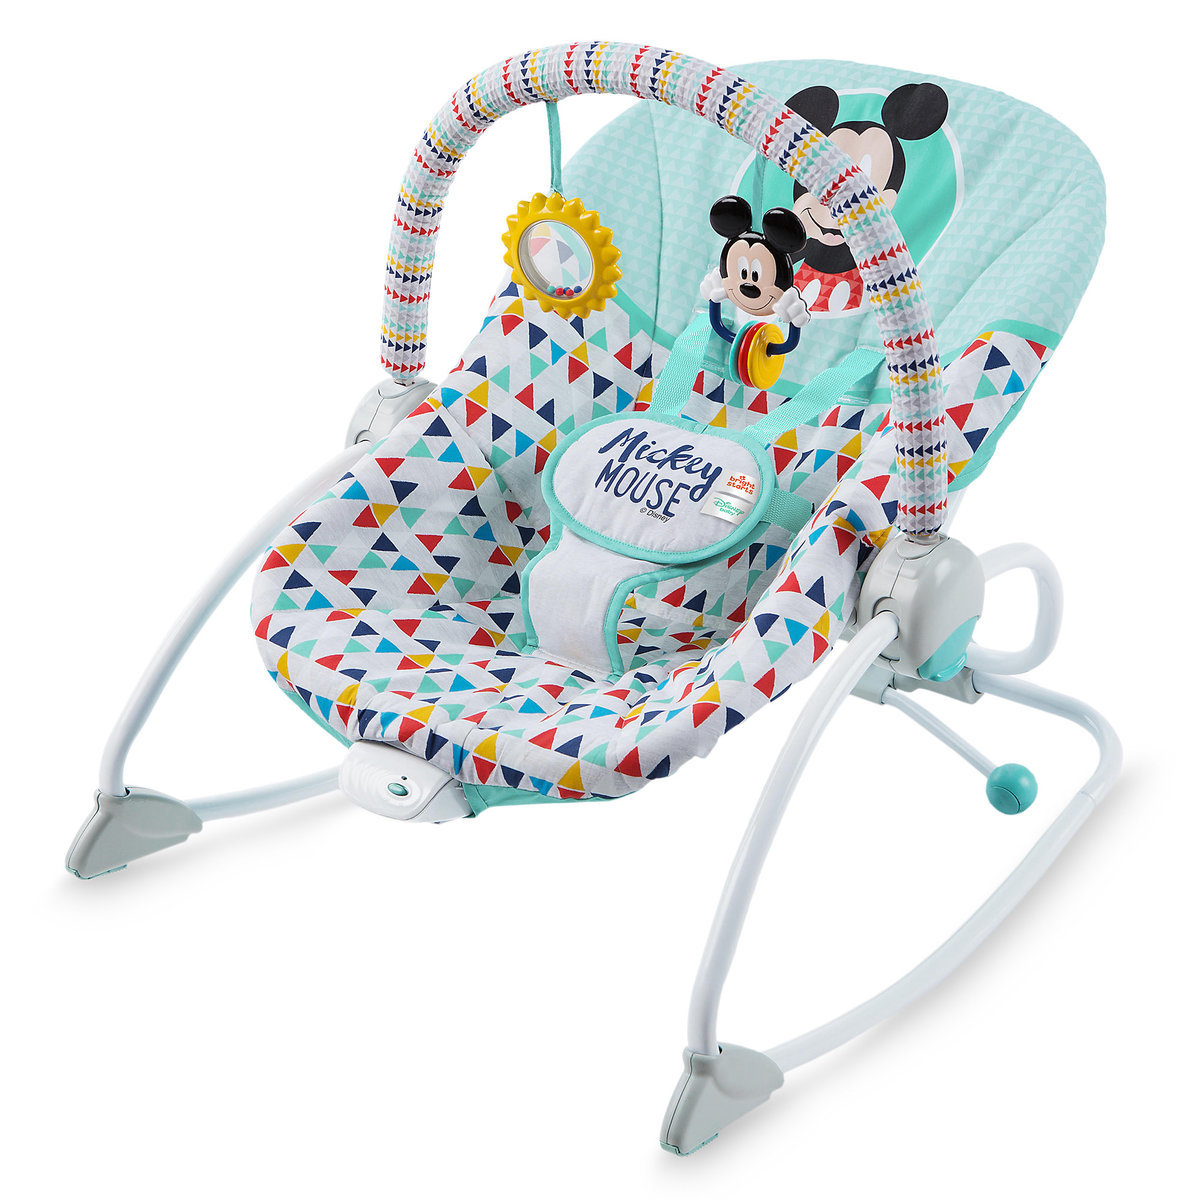 Top 25 Disney Gift Ideas for Babies featured by top US Disney blogger, Marcie and the Mouse: https://lumiere-a.akamaihd.net/v1/images/file_0b44c540.jpeg?width=1200&region=0%2C0%2C2000%2C2000